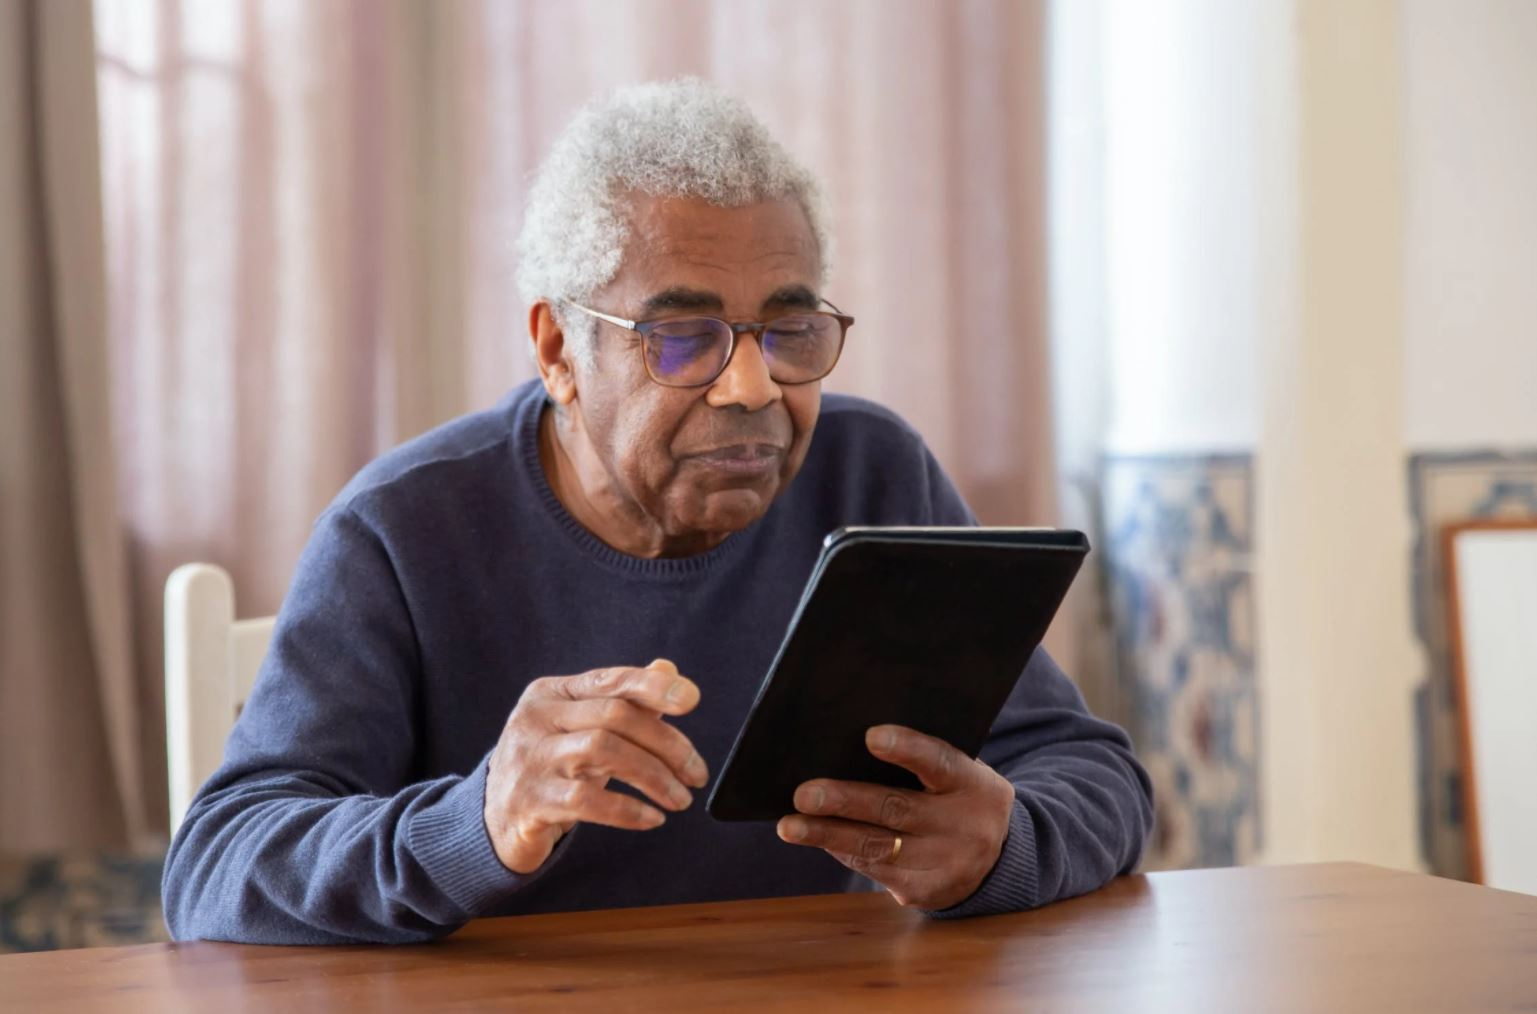 Image of an elderly man on a tablet device.